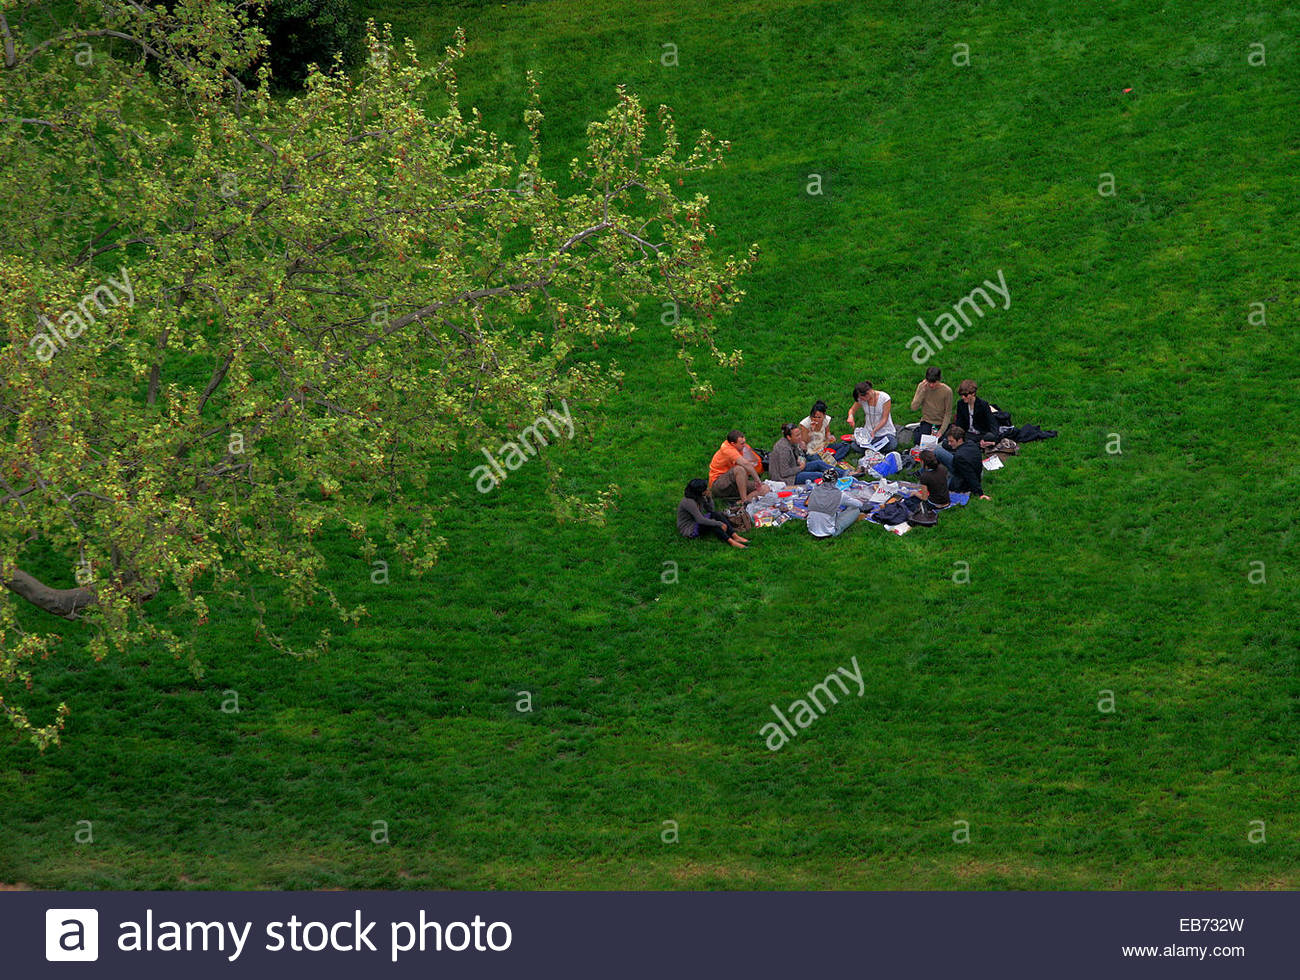 Young people having picnic in the park of the Buttes-Chaumont, Paris. - Stock Image